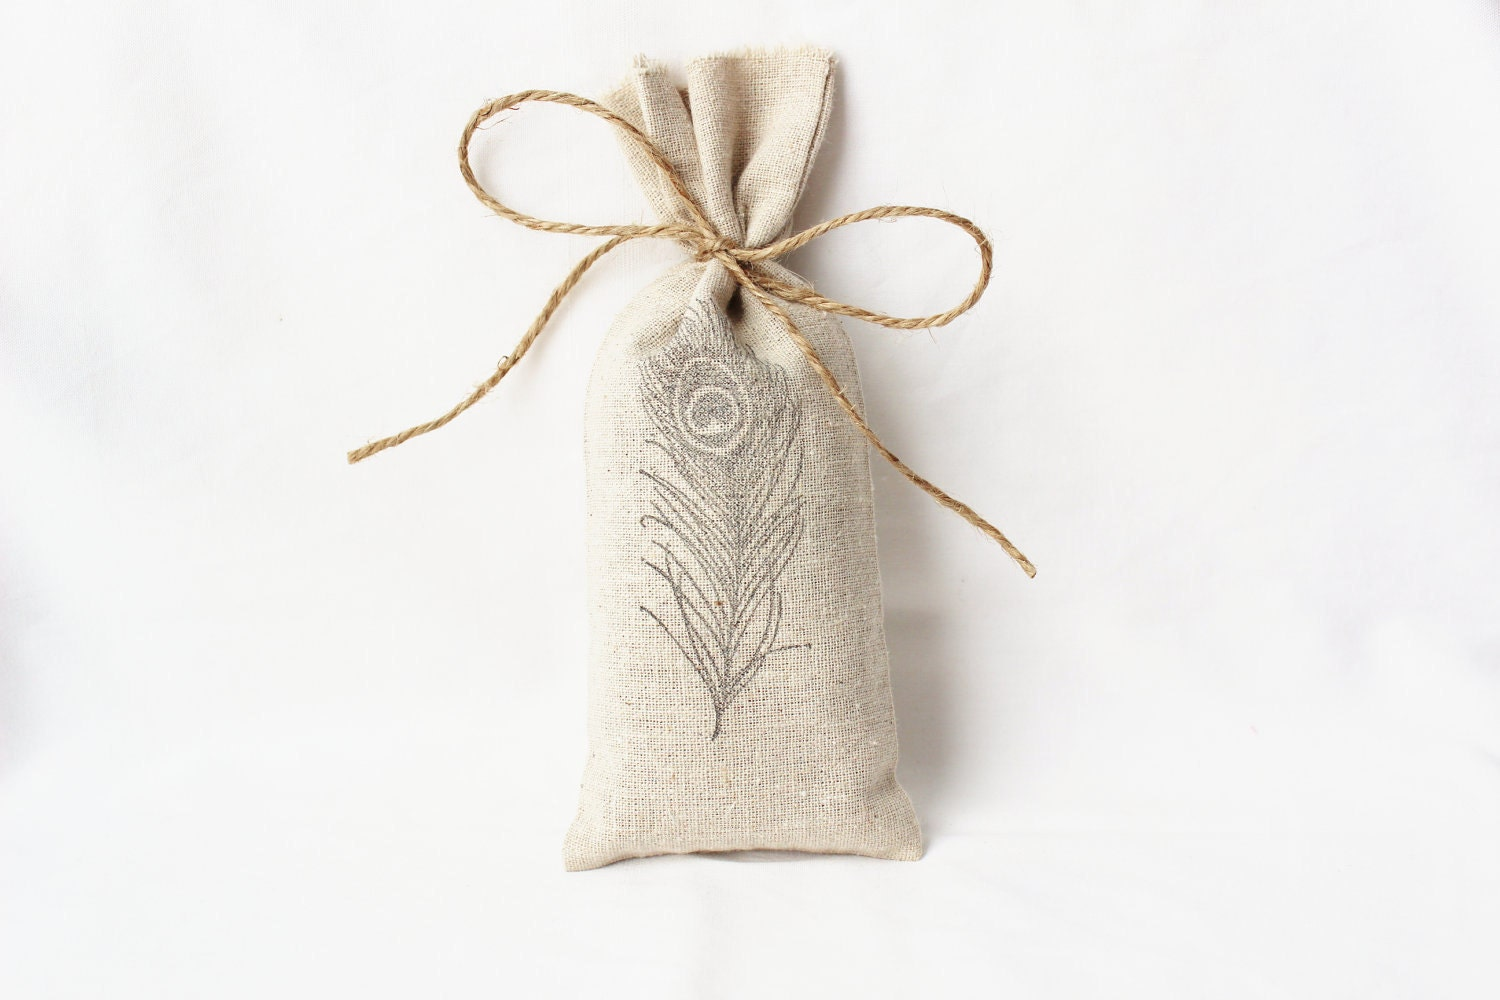 Lavender Sachet, Peacock Feather, Refillable